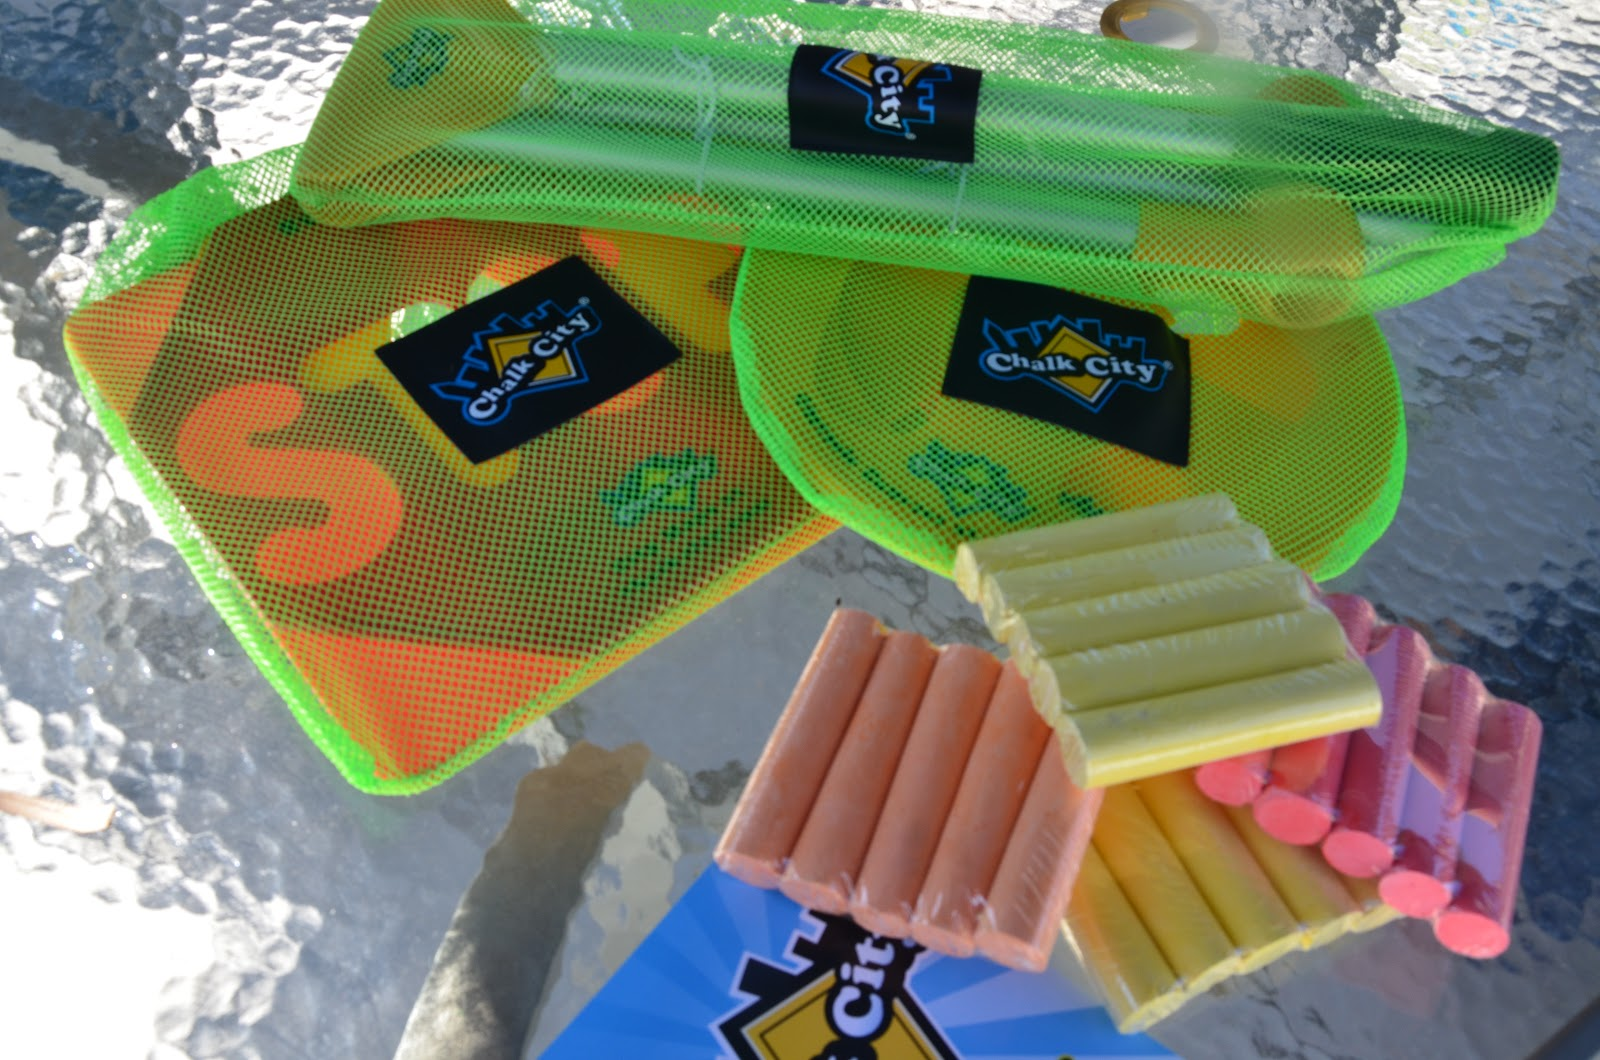 How To Review Book You Havent Read >> Chalk City® Activity Kit Review & Give-Away!!